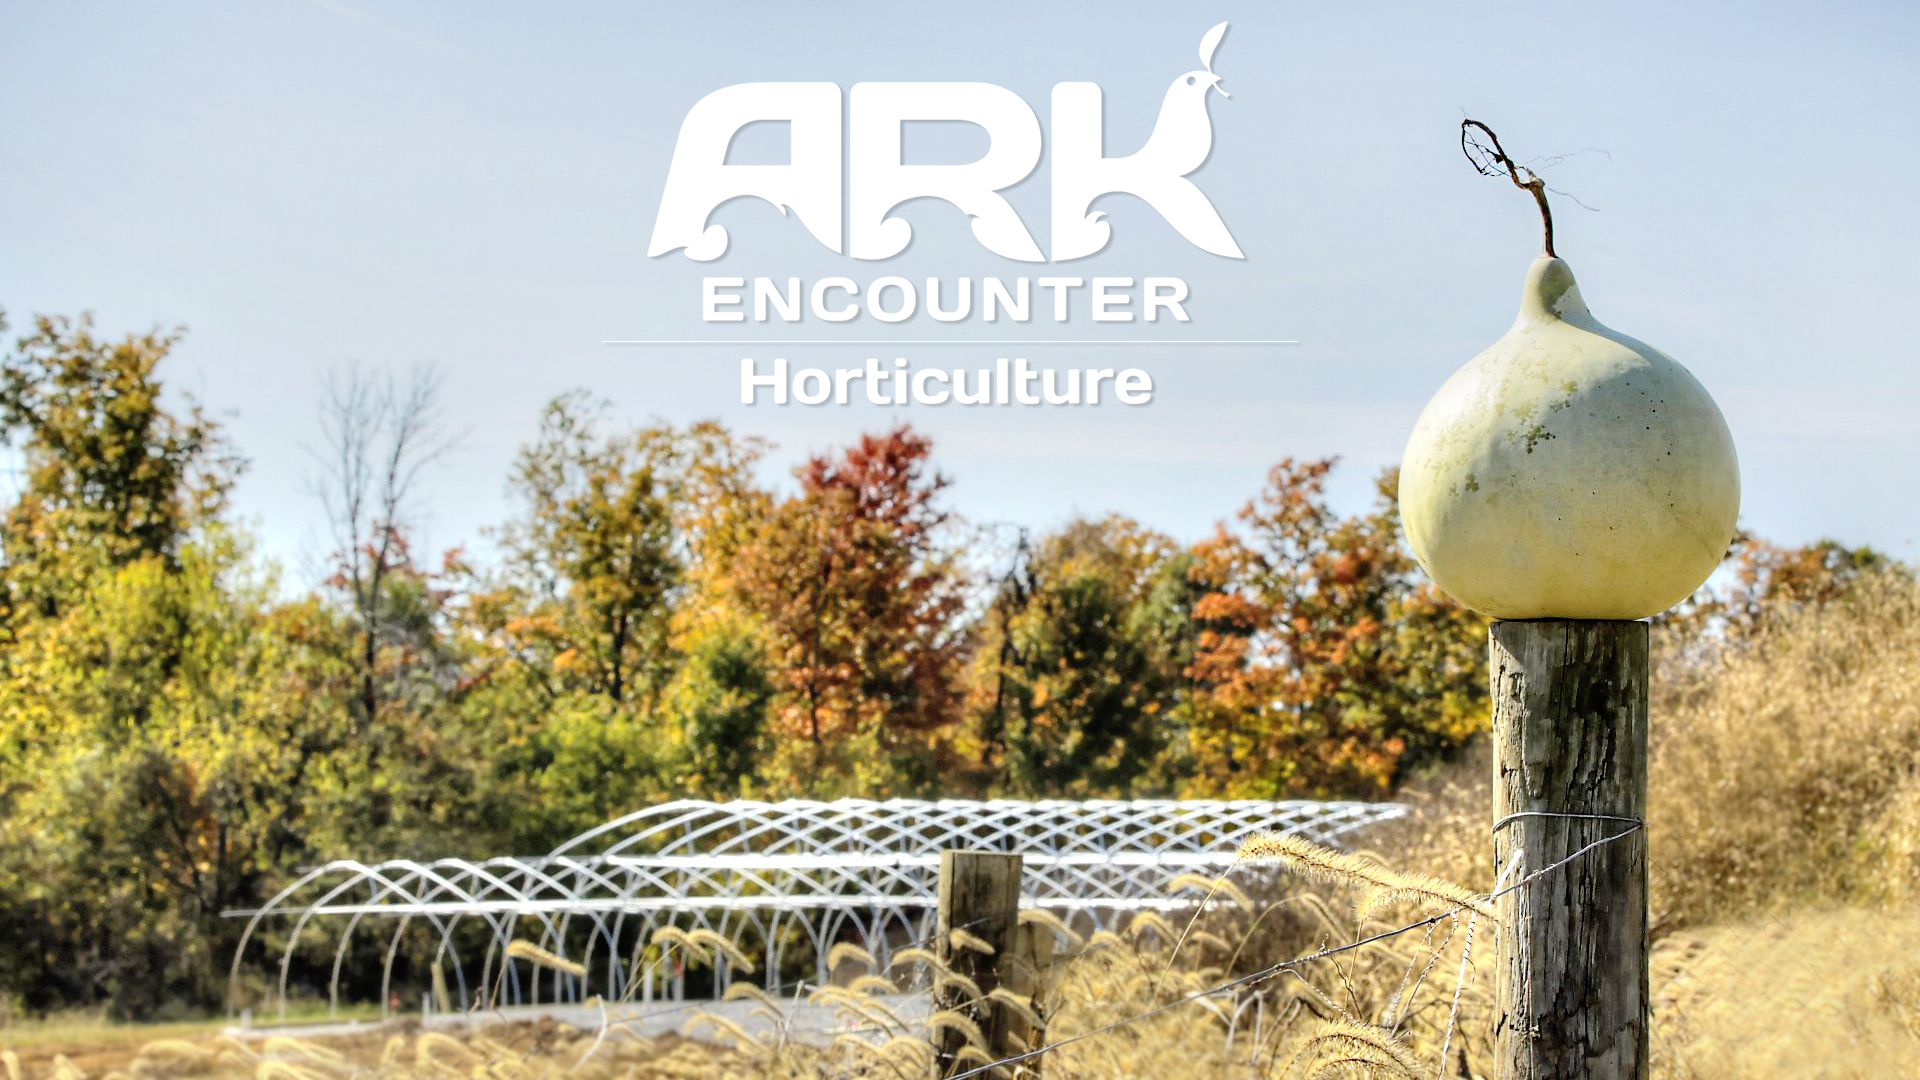 Horticulture efforts at the Ark Encounter